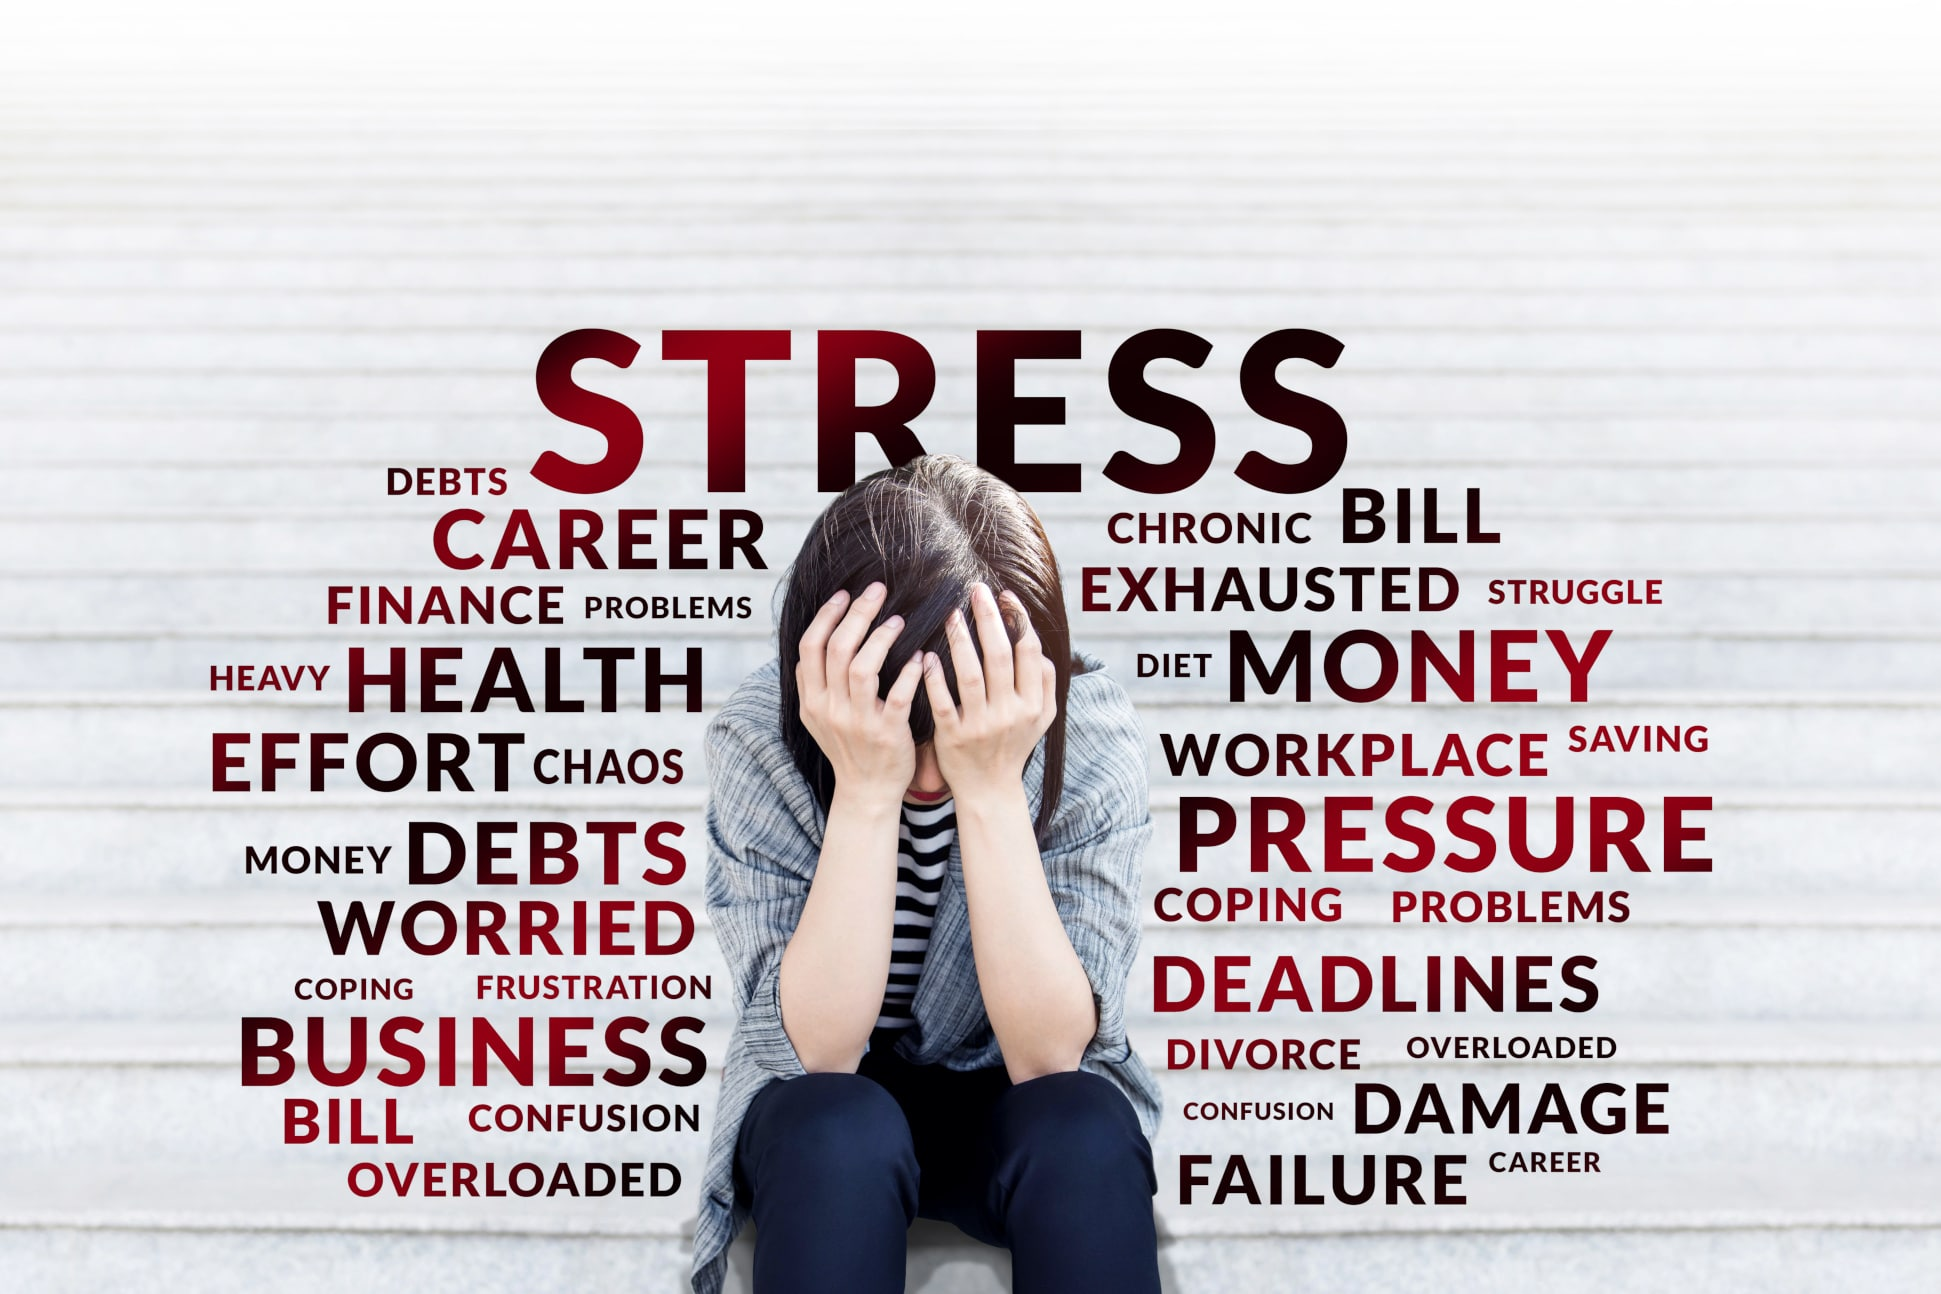 Is stress putting your health at risk?